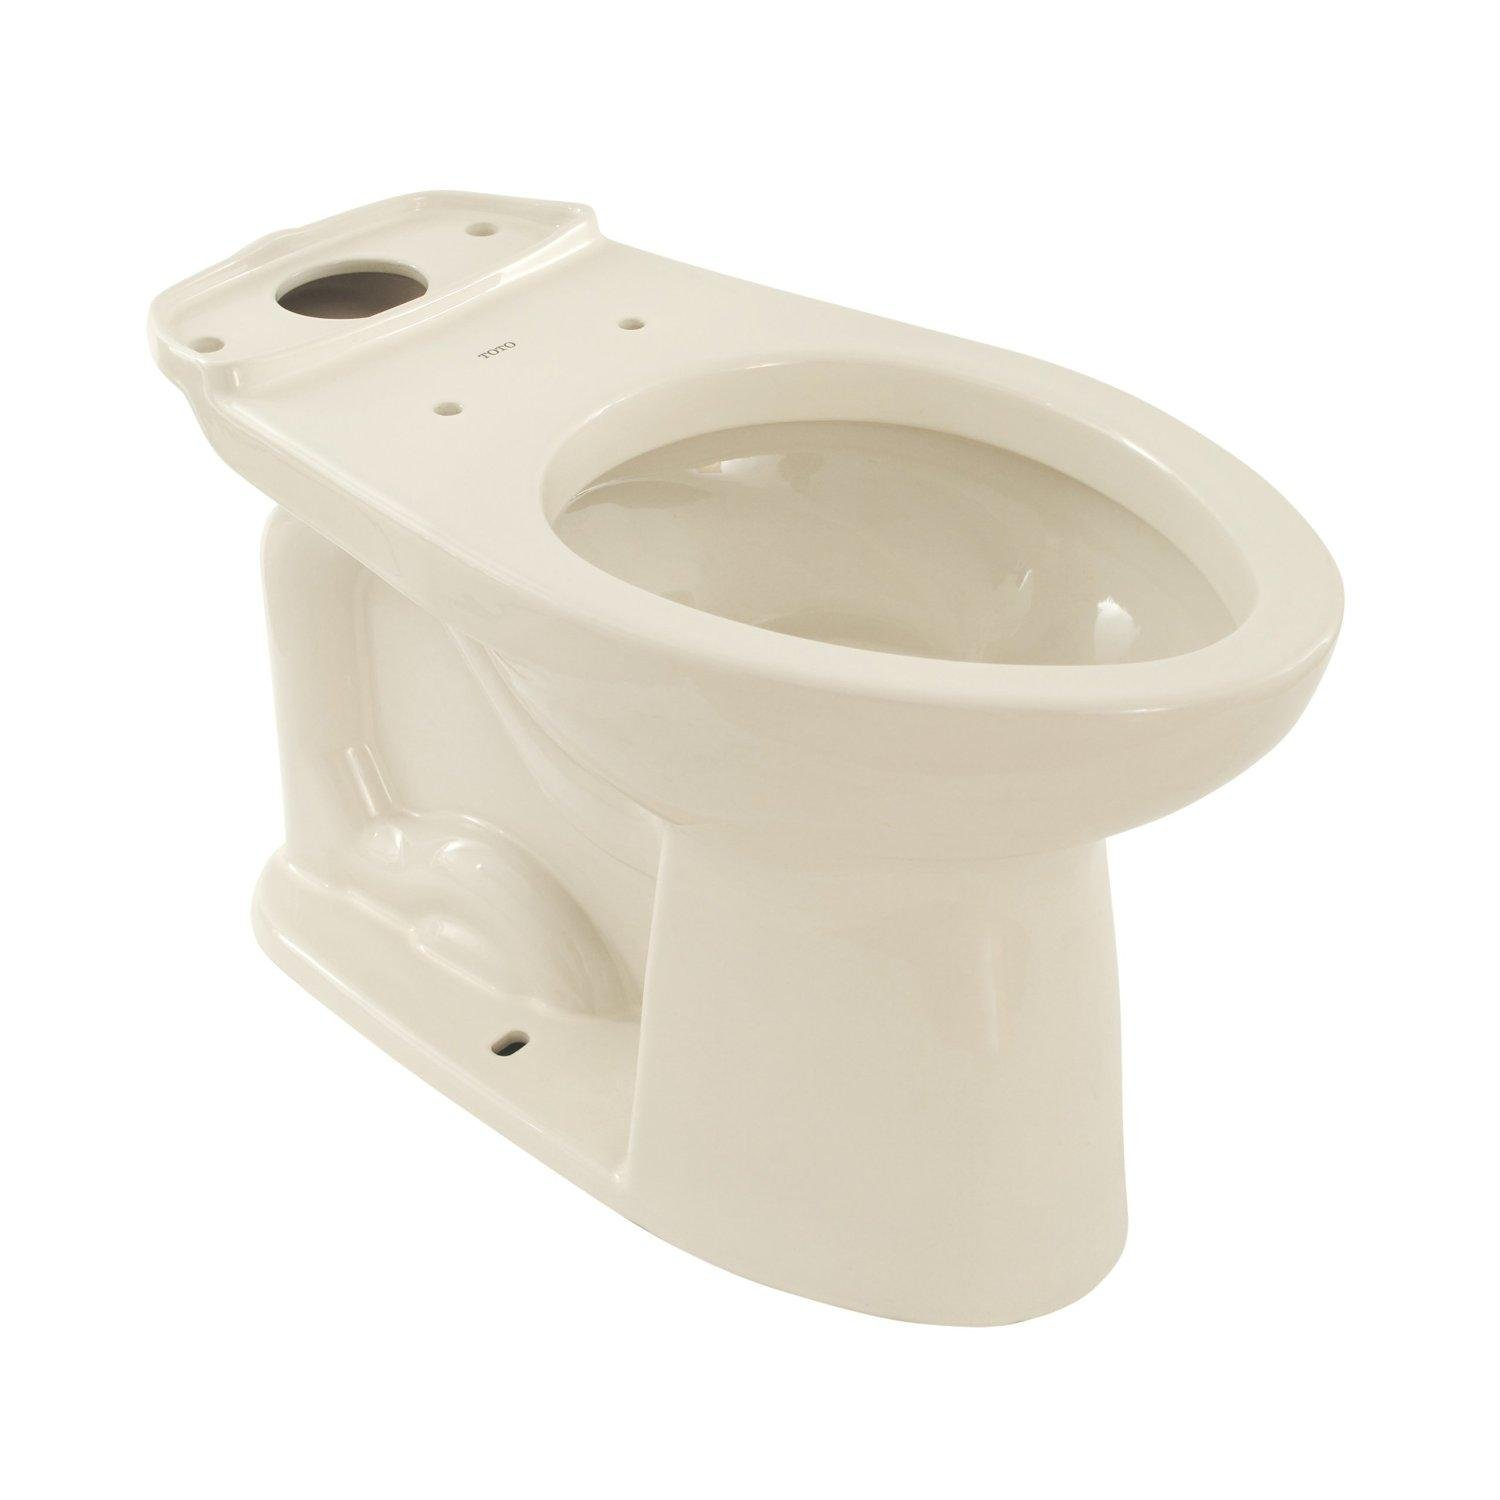 Tremendous Toto C744Sl01 Drake Elongated Toilet Bowl White Ocoug Best Dining Table And Chair Ideas Images Ocougorg